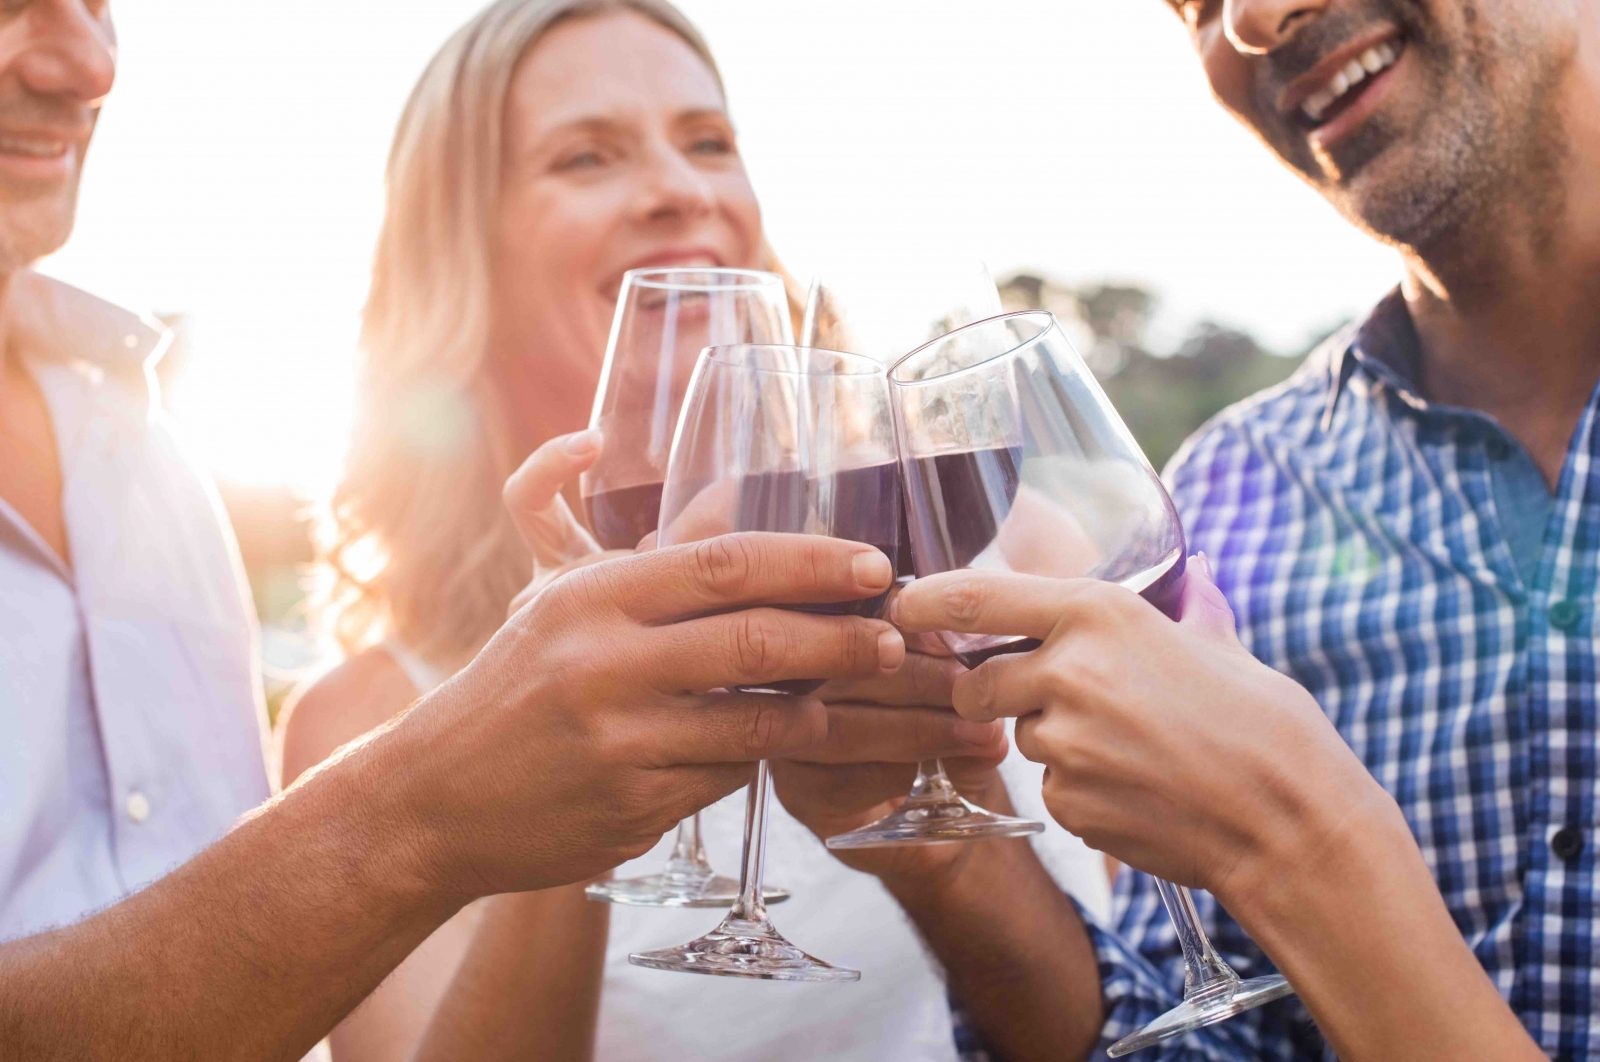 Courtesy Rido/Fotolia. Friends toasting with red wine at a winery.